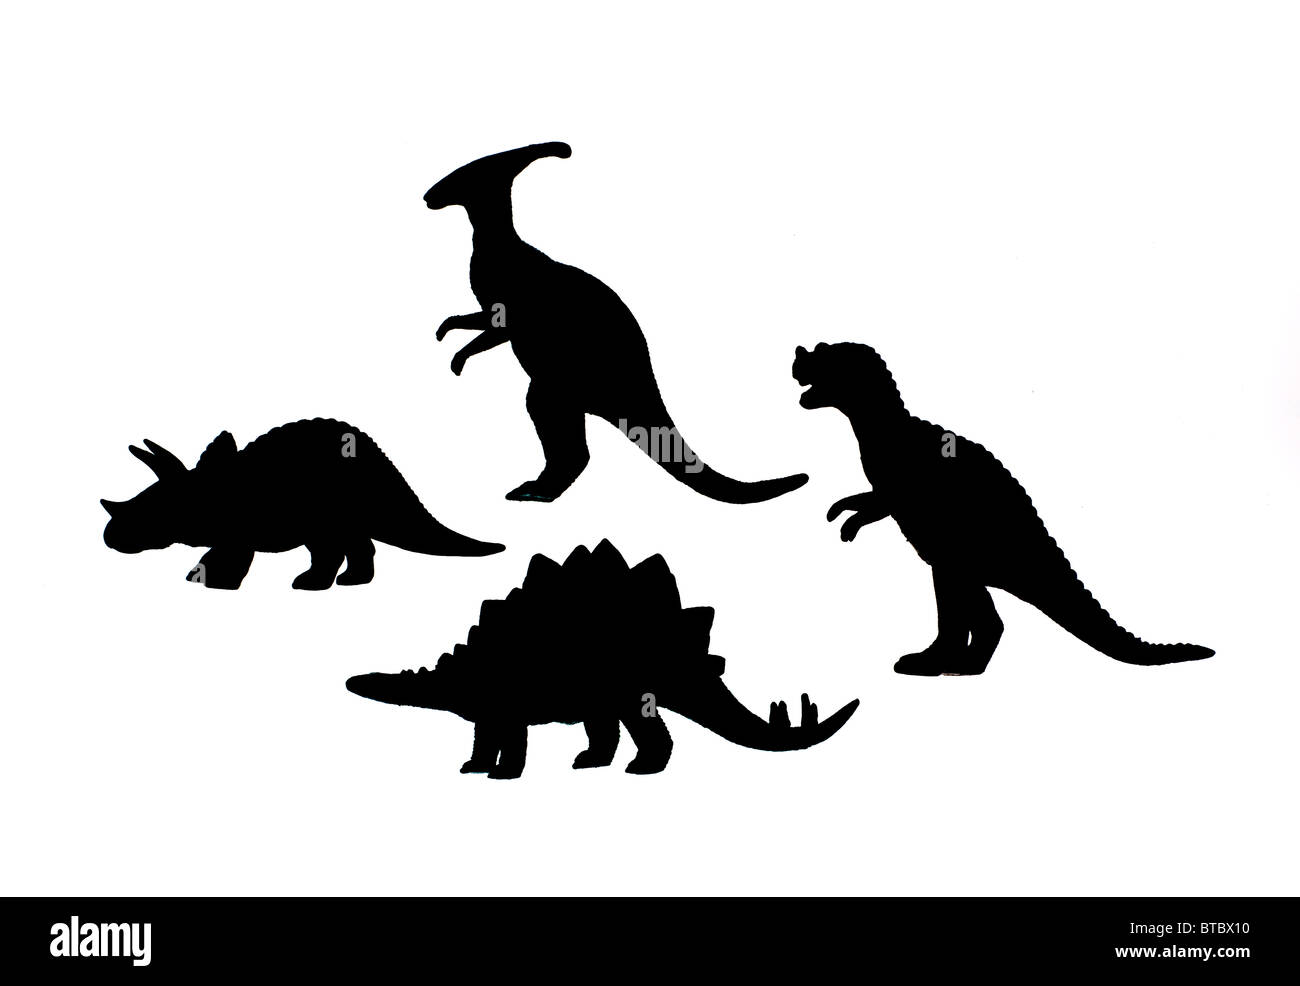 Silhouettes of dinosaurs - Stock Image